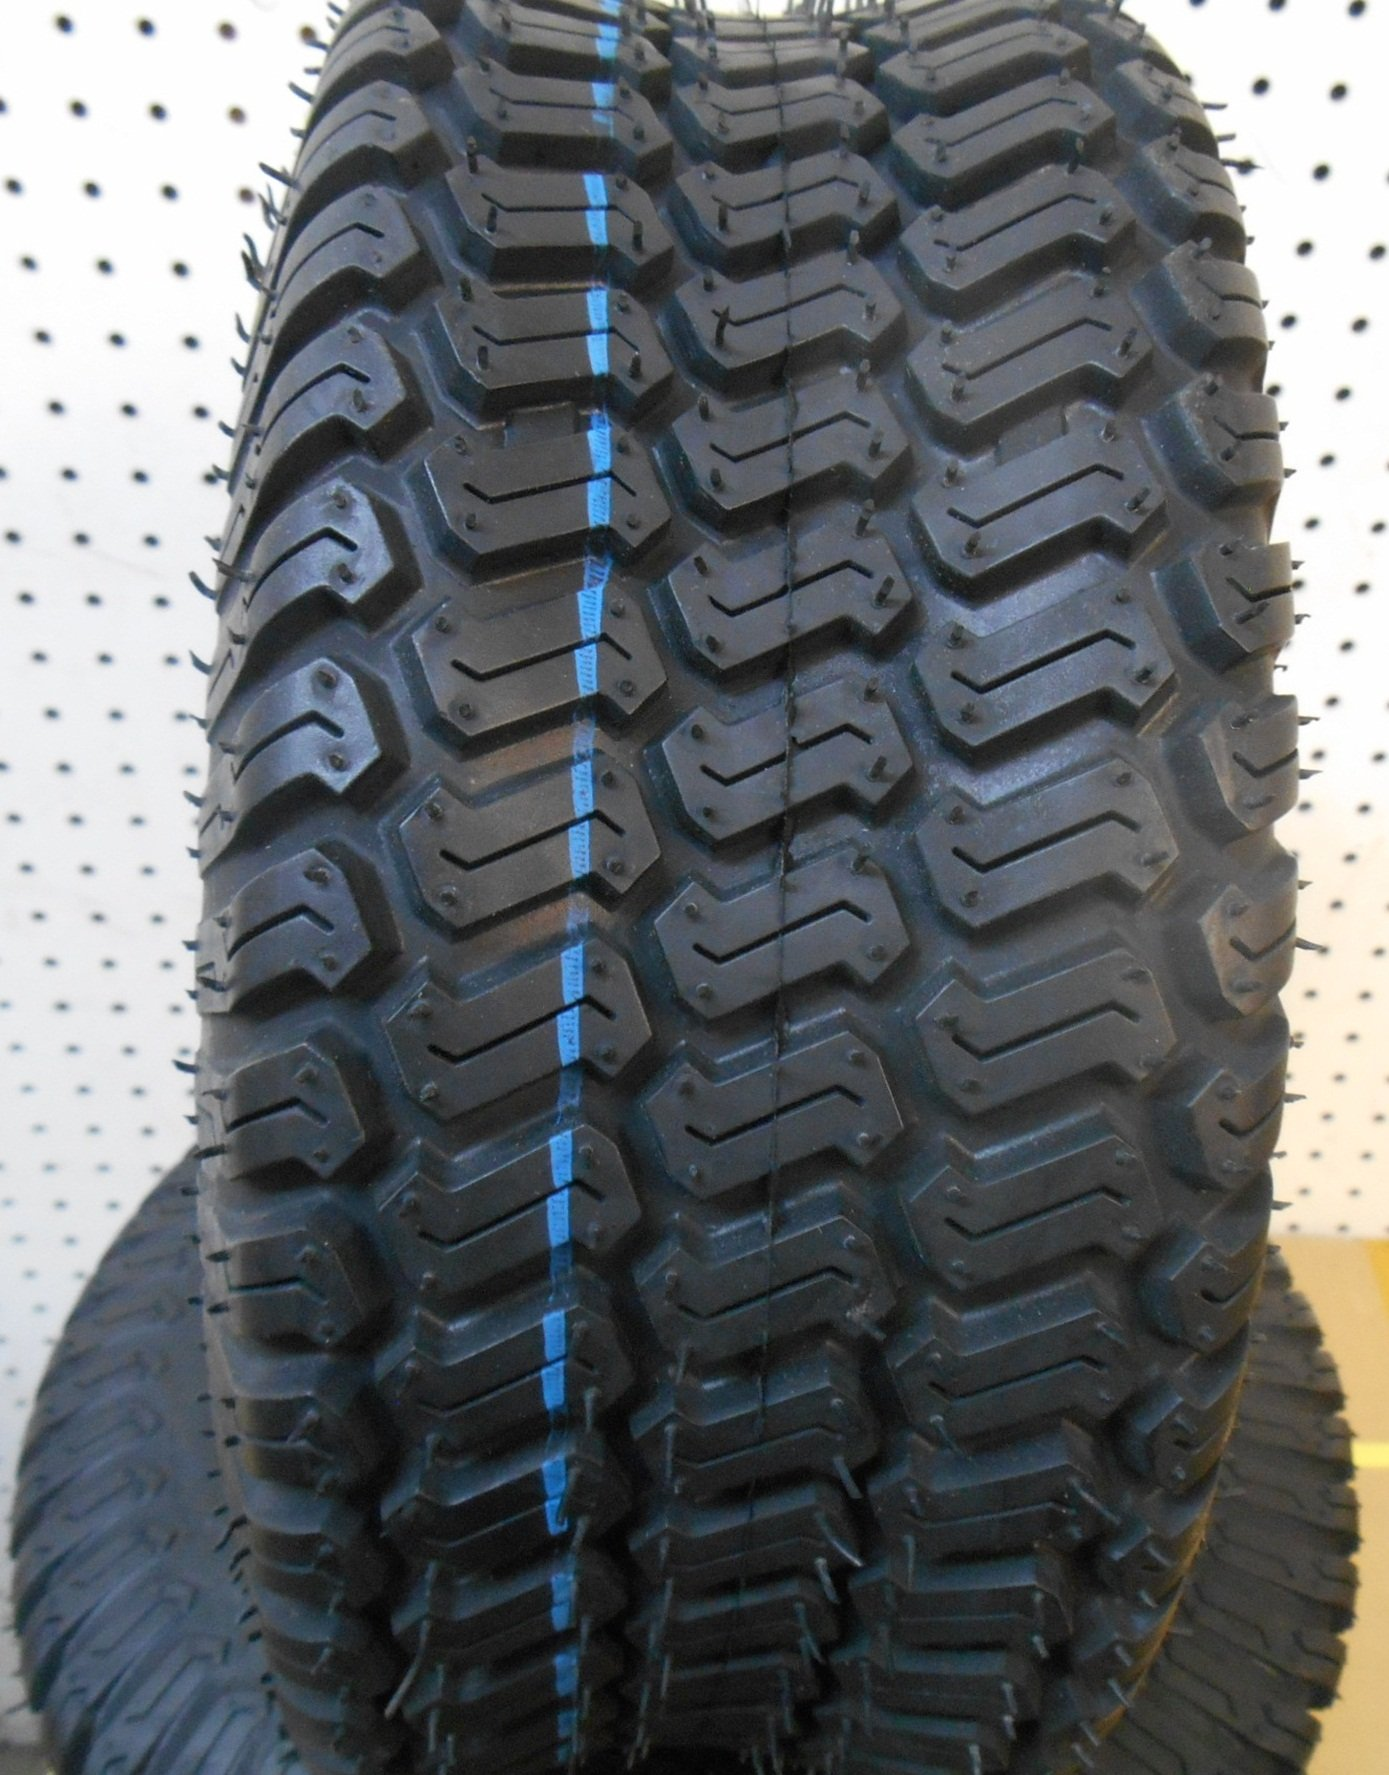 """(Lot of 2) Airloc brand 6"""" 15x6.00-6 15x6.00x6 Tubeless Turf Tires 4 ply rated"""